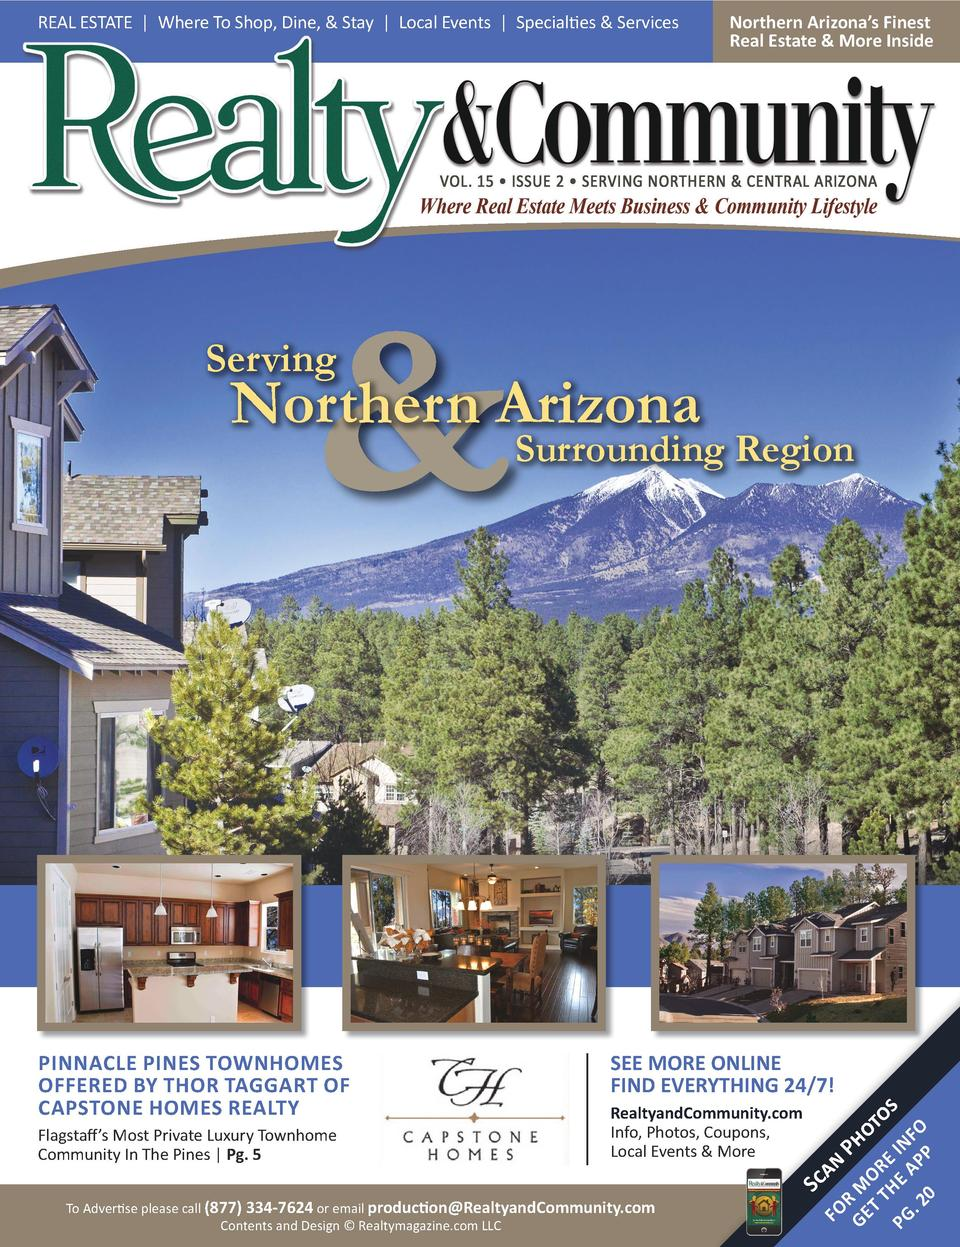 REAL ESTATE   Where To Shop, Dine,   Stay   Local Events   Specialties   Services  Northern Arizona   s Finest Real Estate...